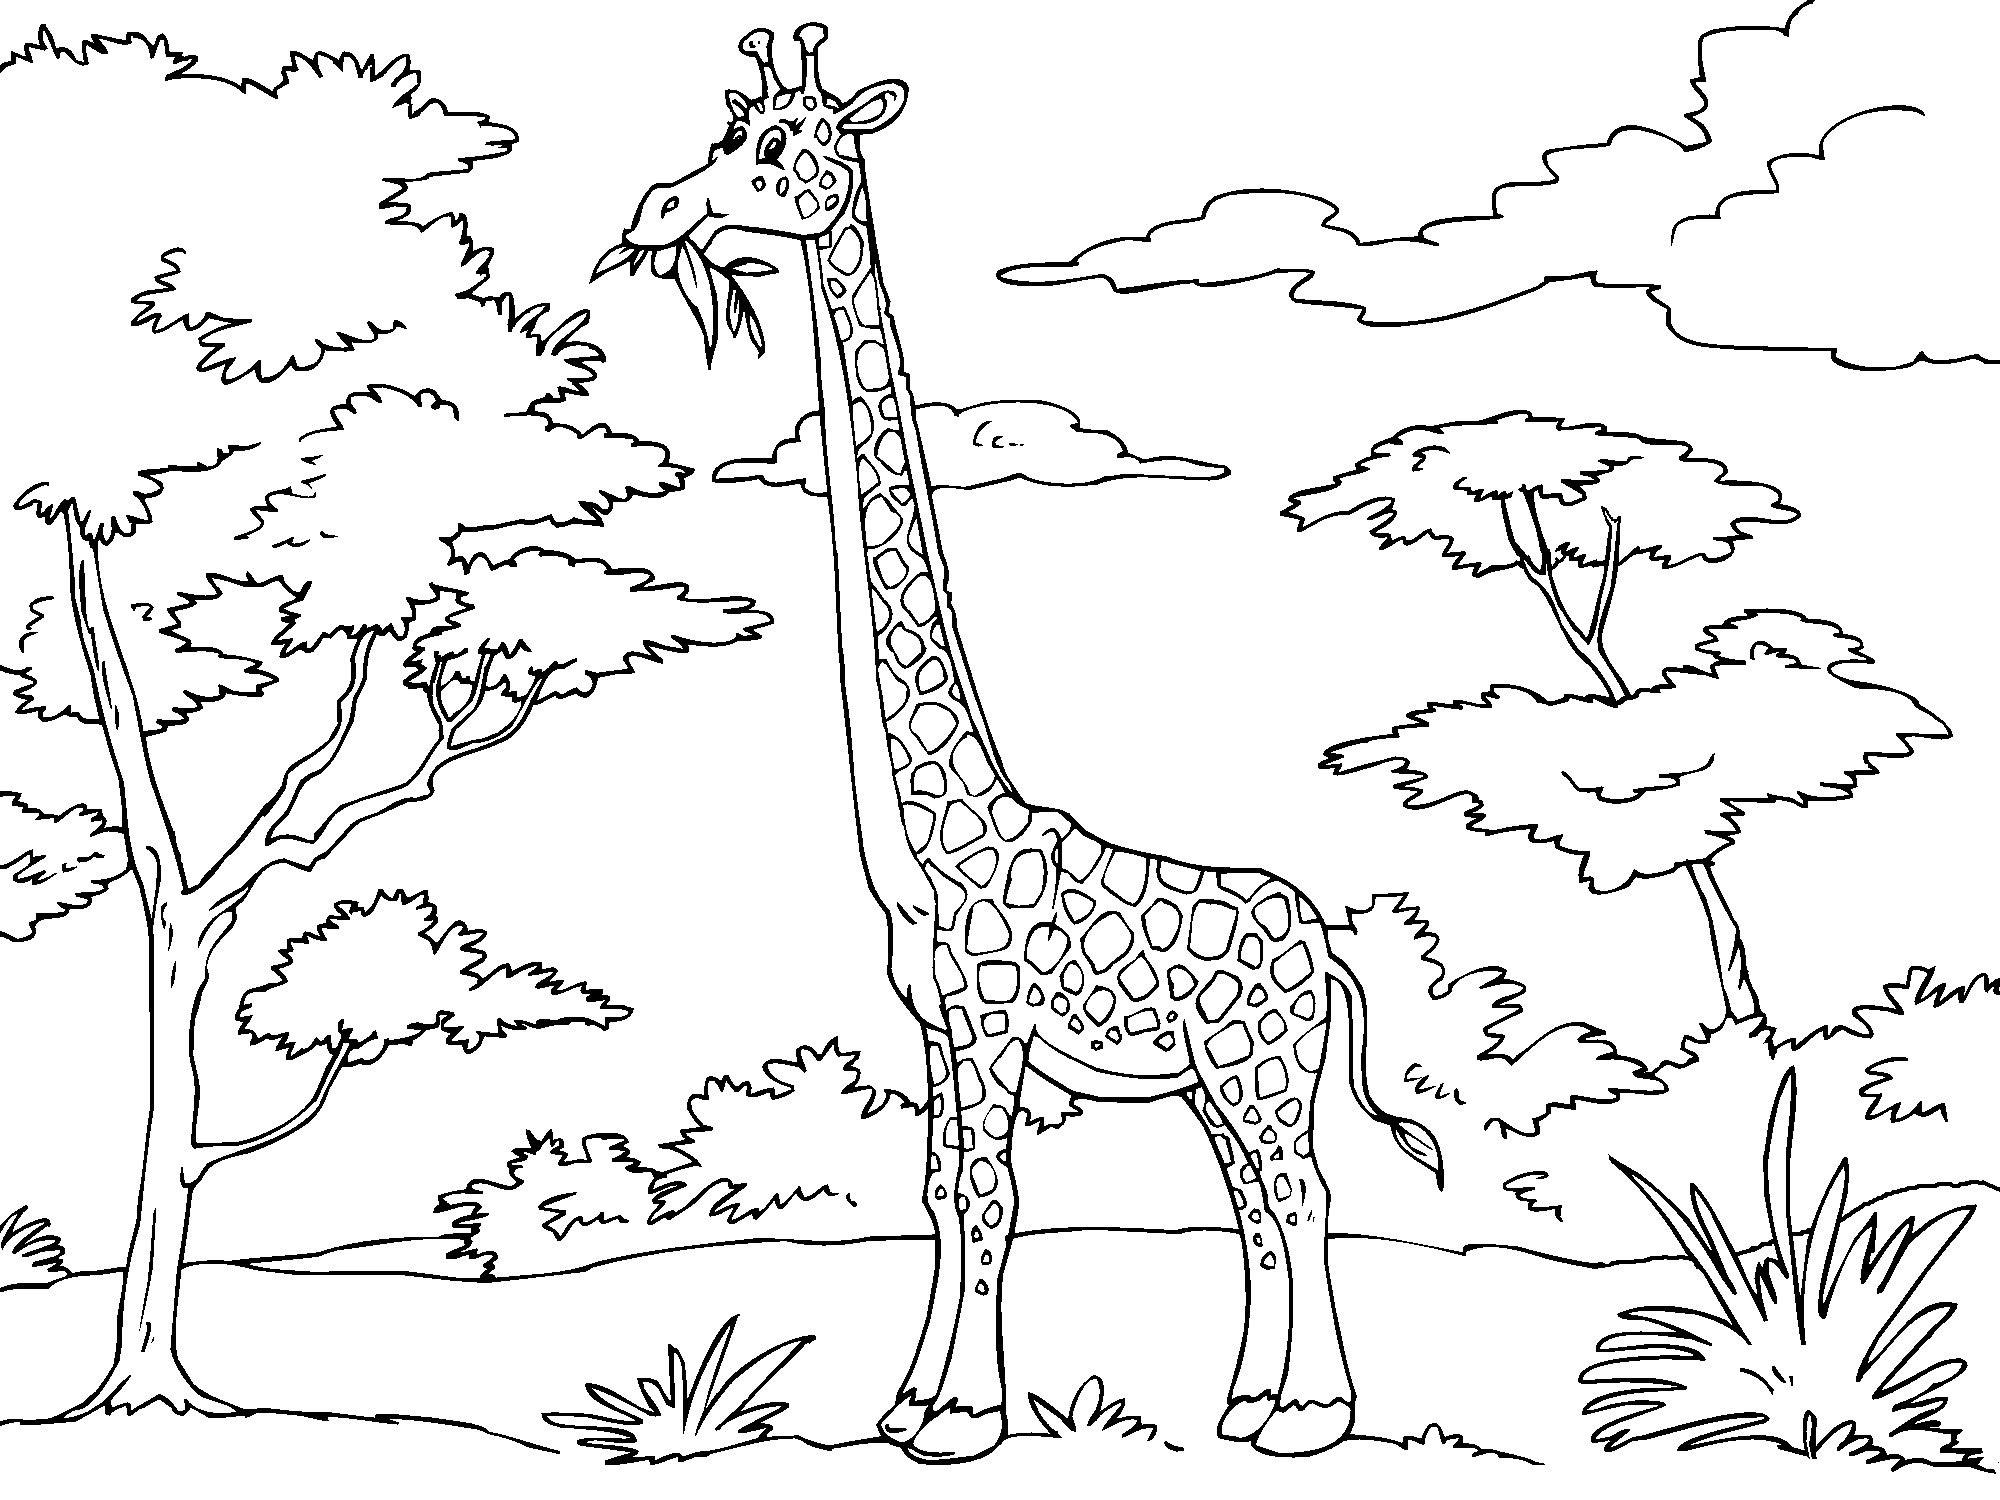 2000x1500 Baby Giraffe Coloring Page To Print